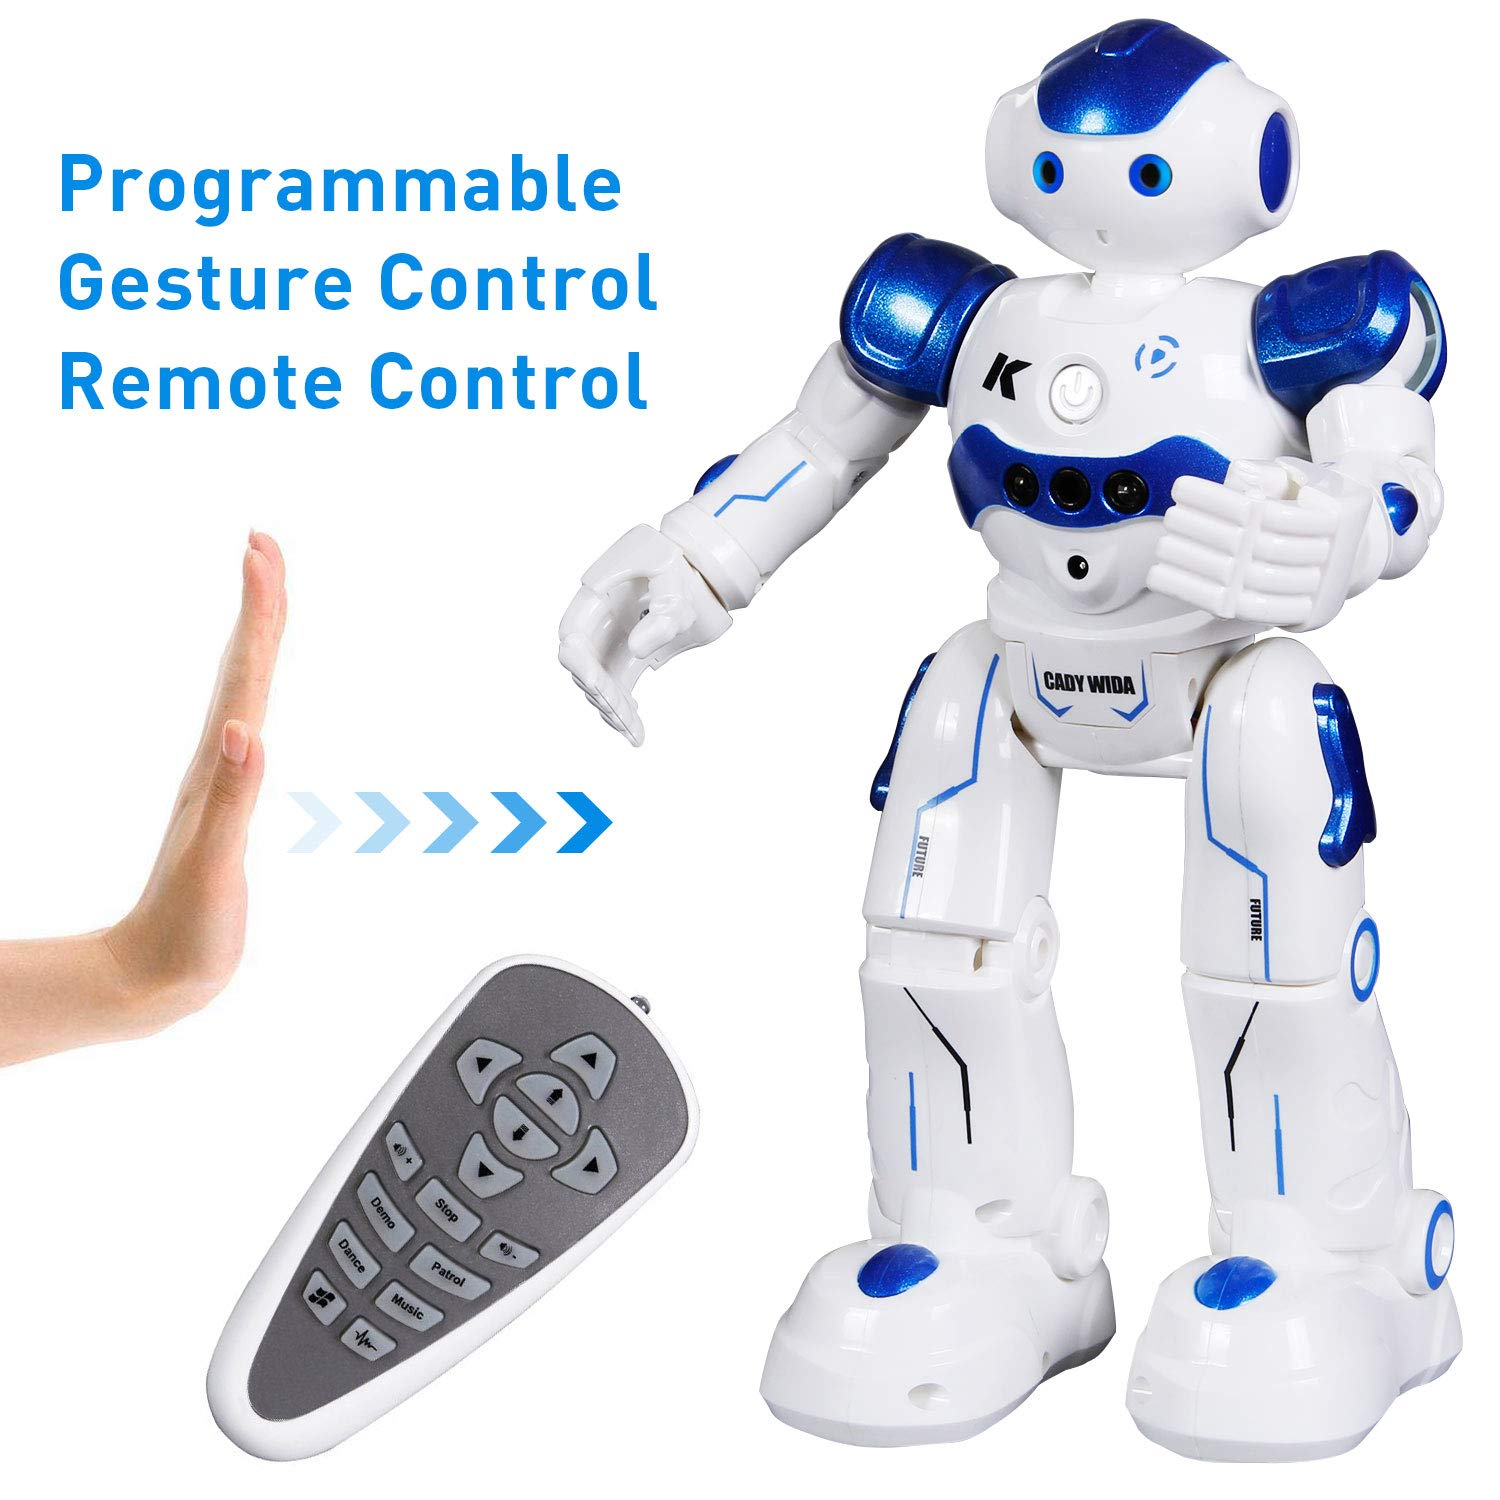 SGILE Remote Control Robot, RC Programmable Educational Robot for Kids Birthday Gift Present, Interactive Walking Singing Dancing Smart Intelligent Robotics for Kids Boy, Blue by SGILE (Image #1)